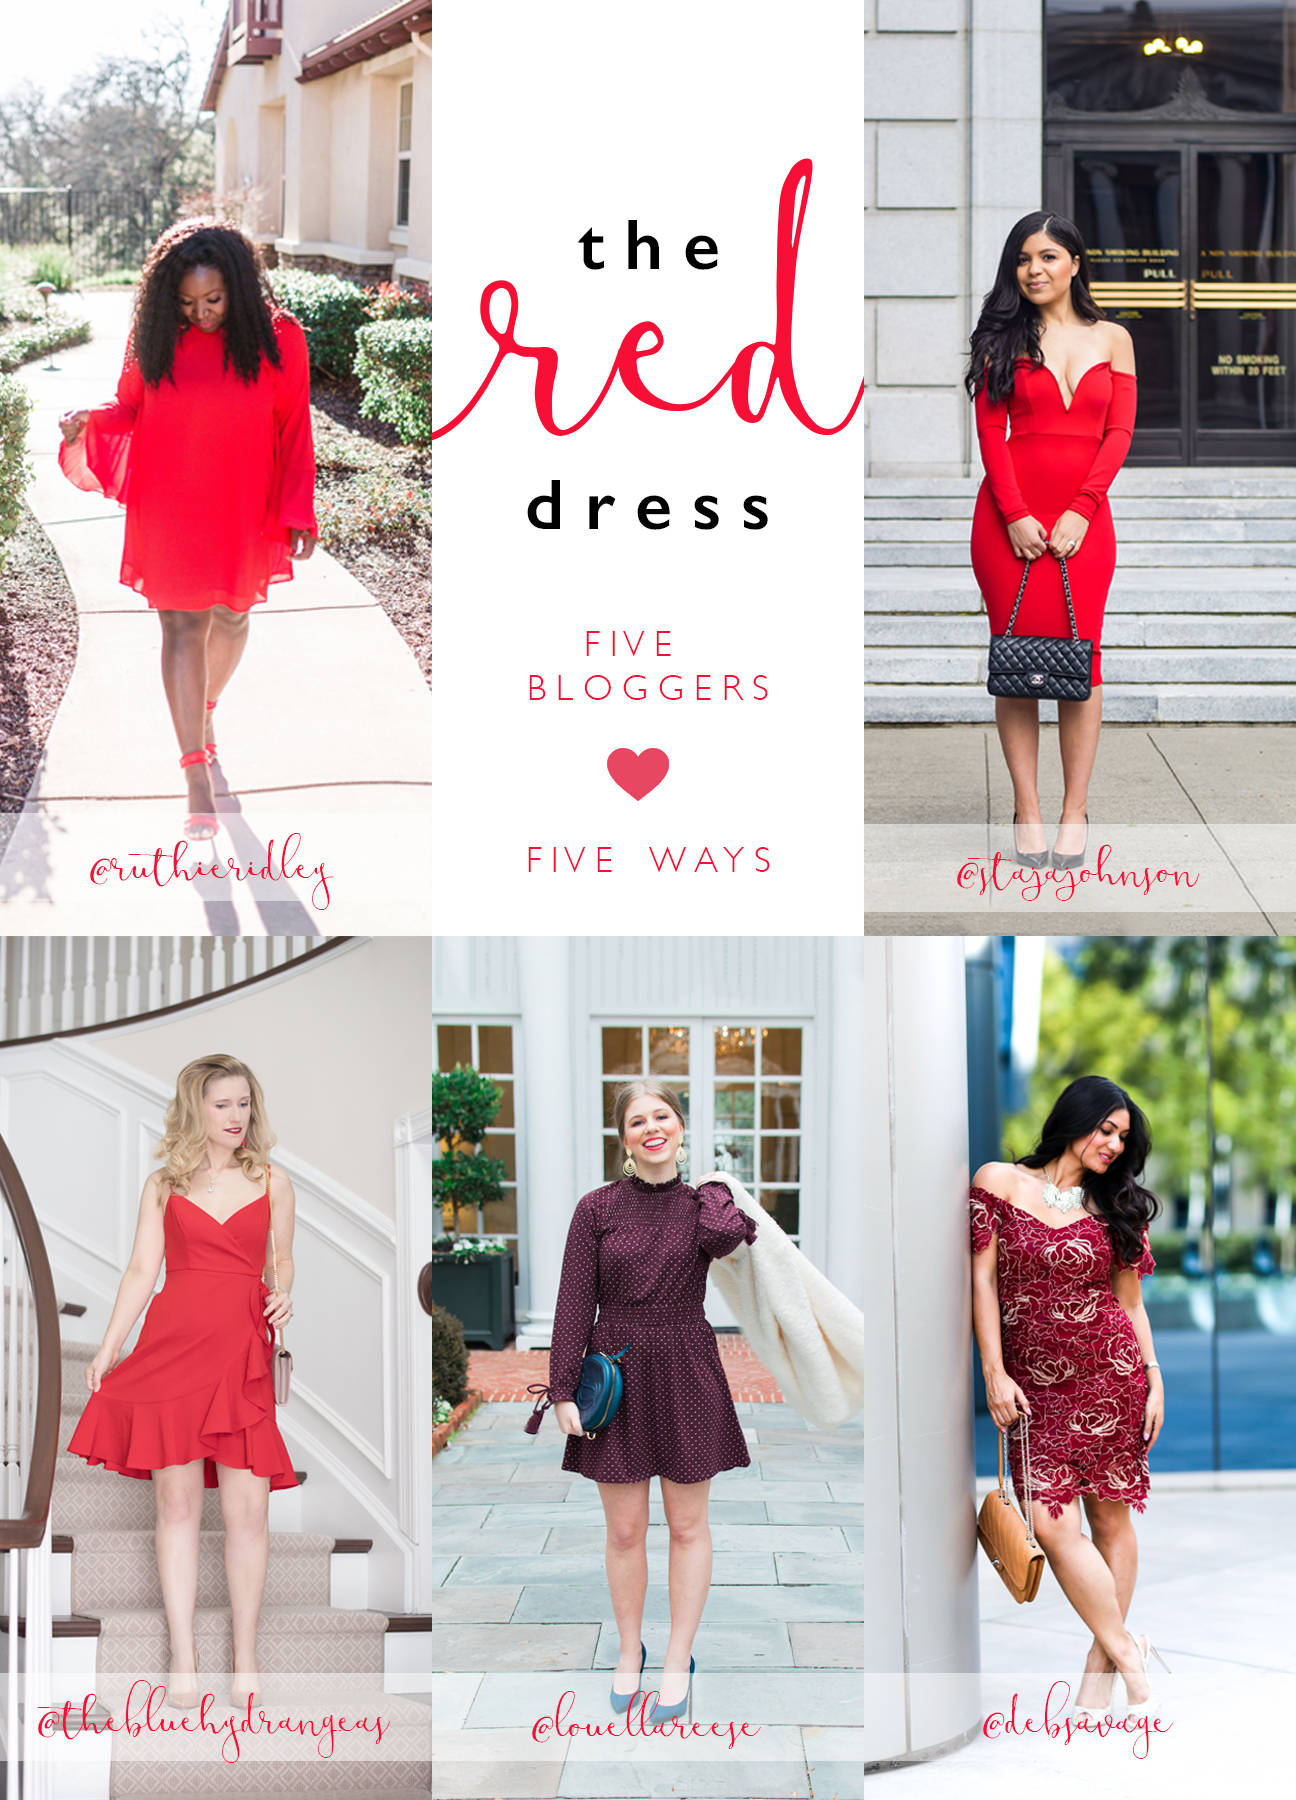 The red dress: 5 bloggers, 5 ways for Valentine's Day